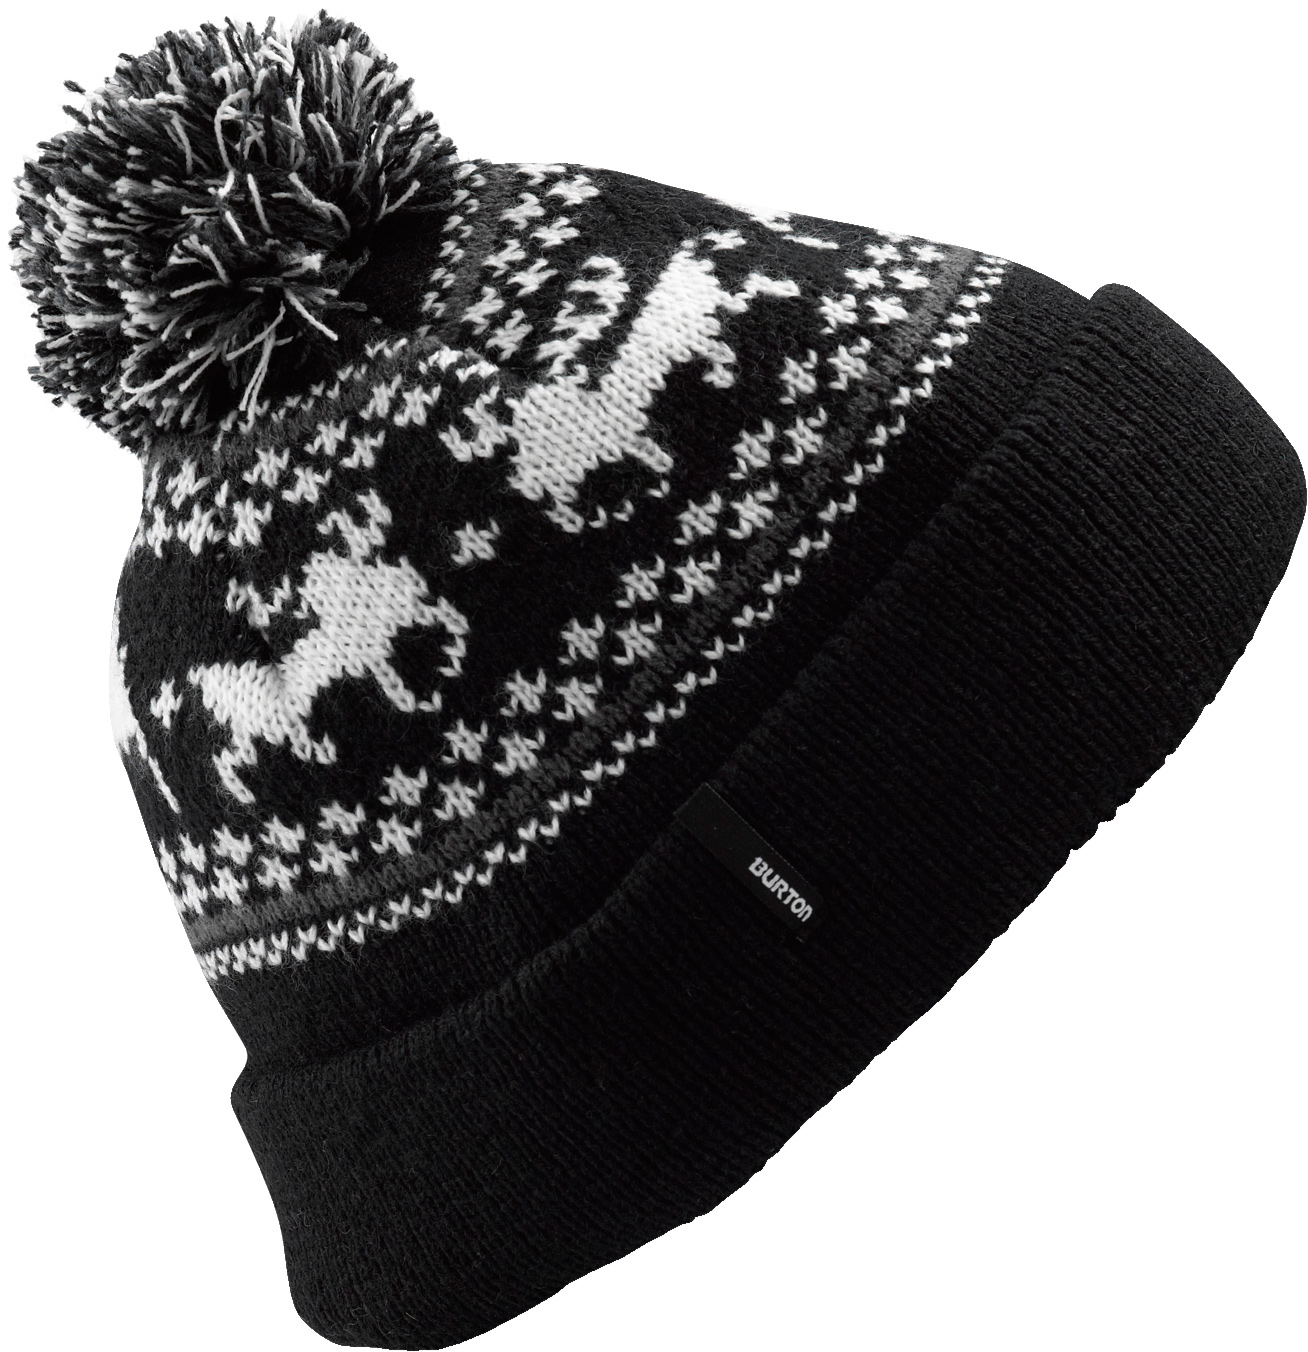 Snowboard Key Features of the Burton Mountain Man Beanie: 100% Acrylic Fair Isle Mountain Logo Jacquard with Pom Skully Fit - $25.00